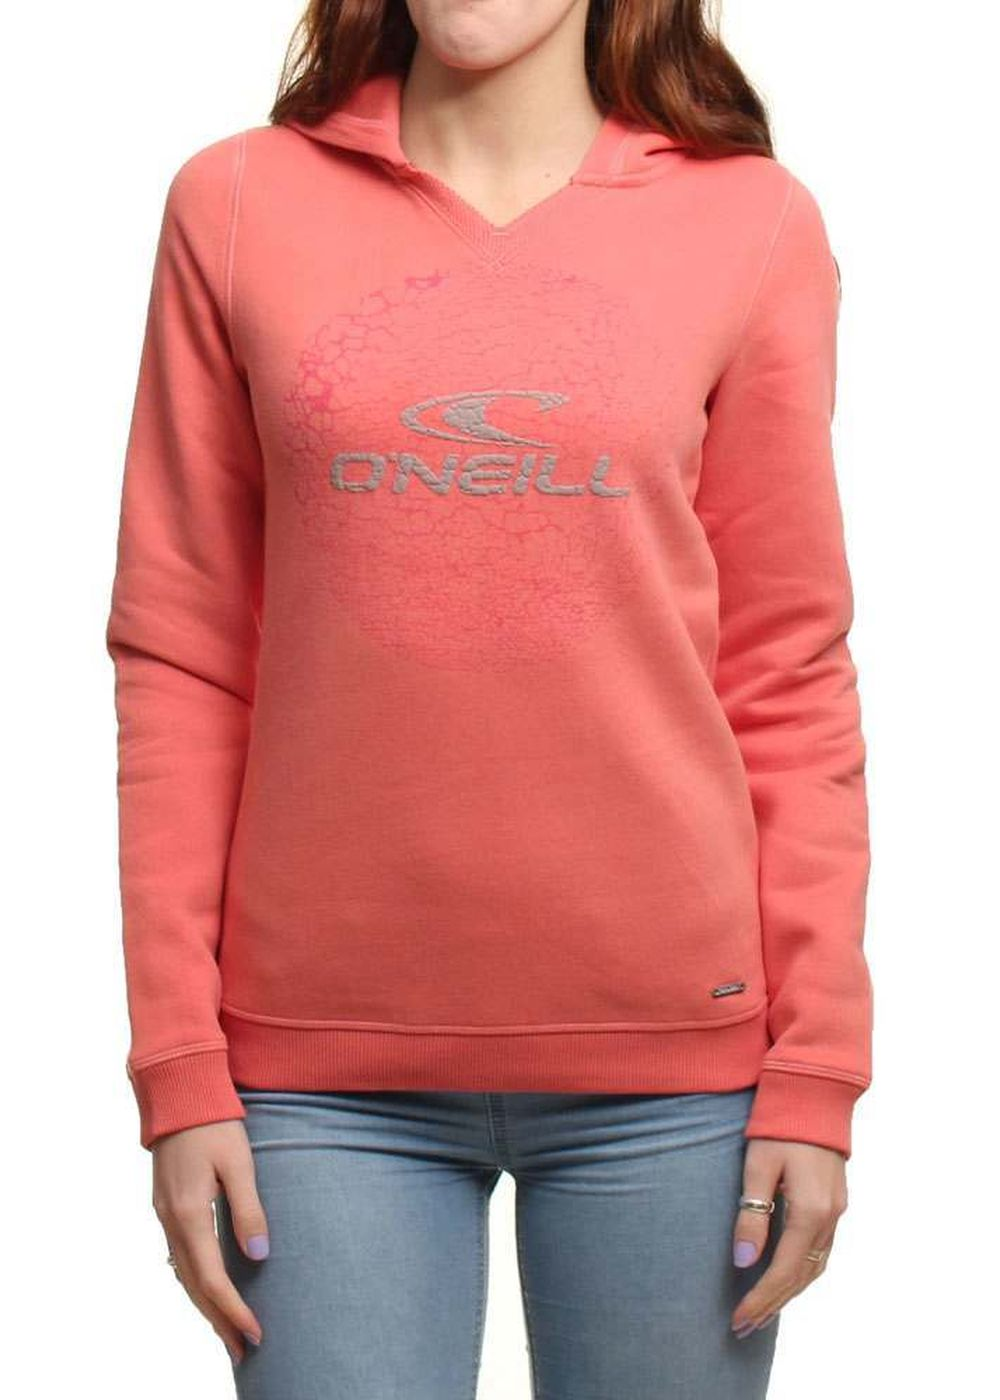 ONEILL CIRCLE LOGO HOODY Faded Rose